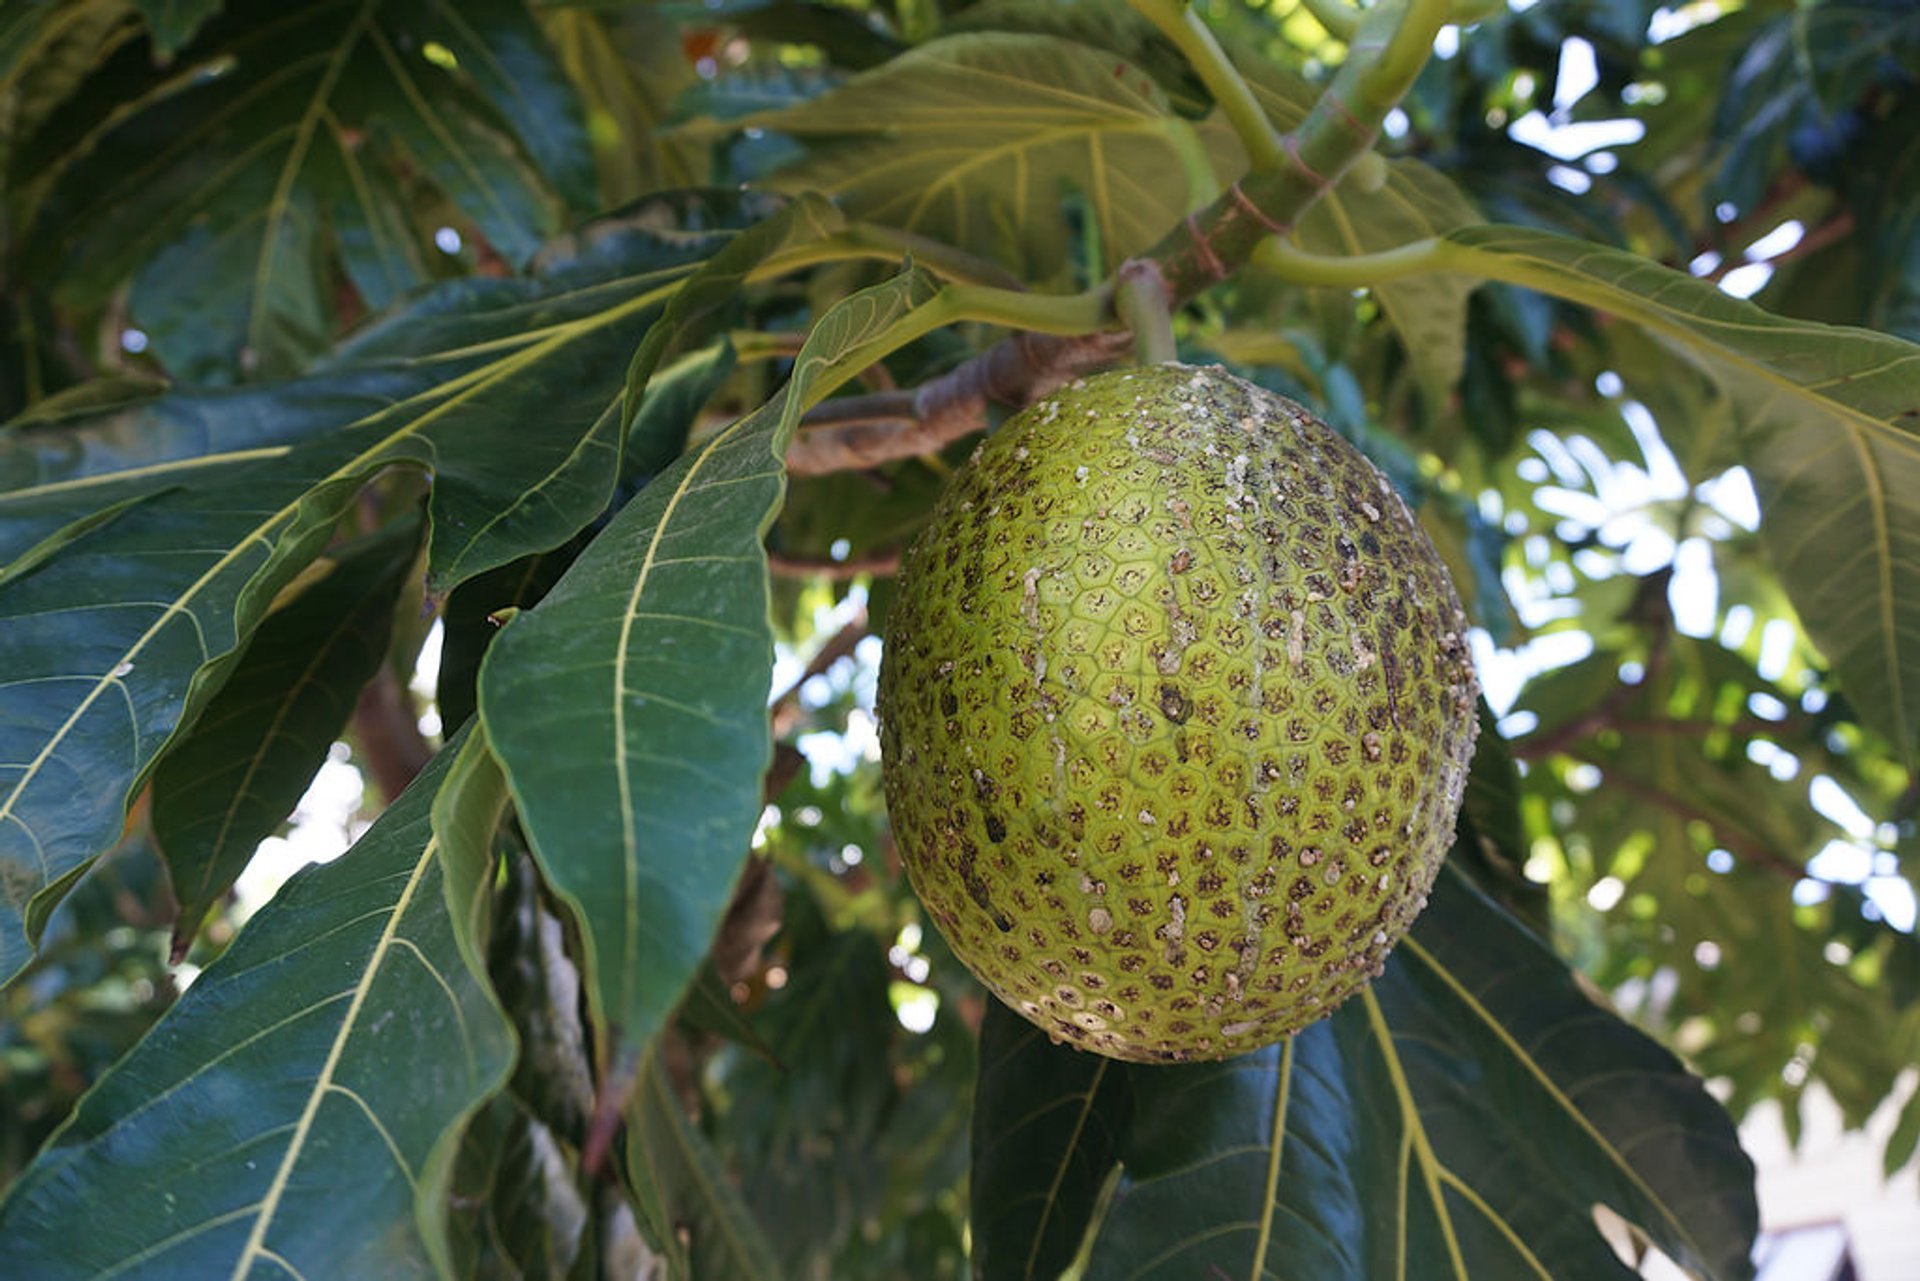 Breadfruit Season in Fiji 2019 - Best Time